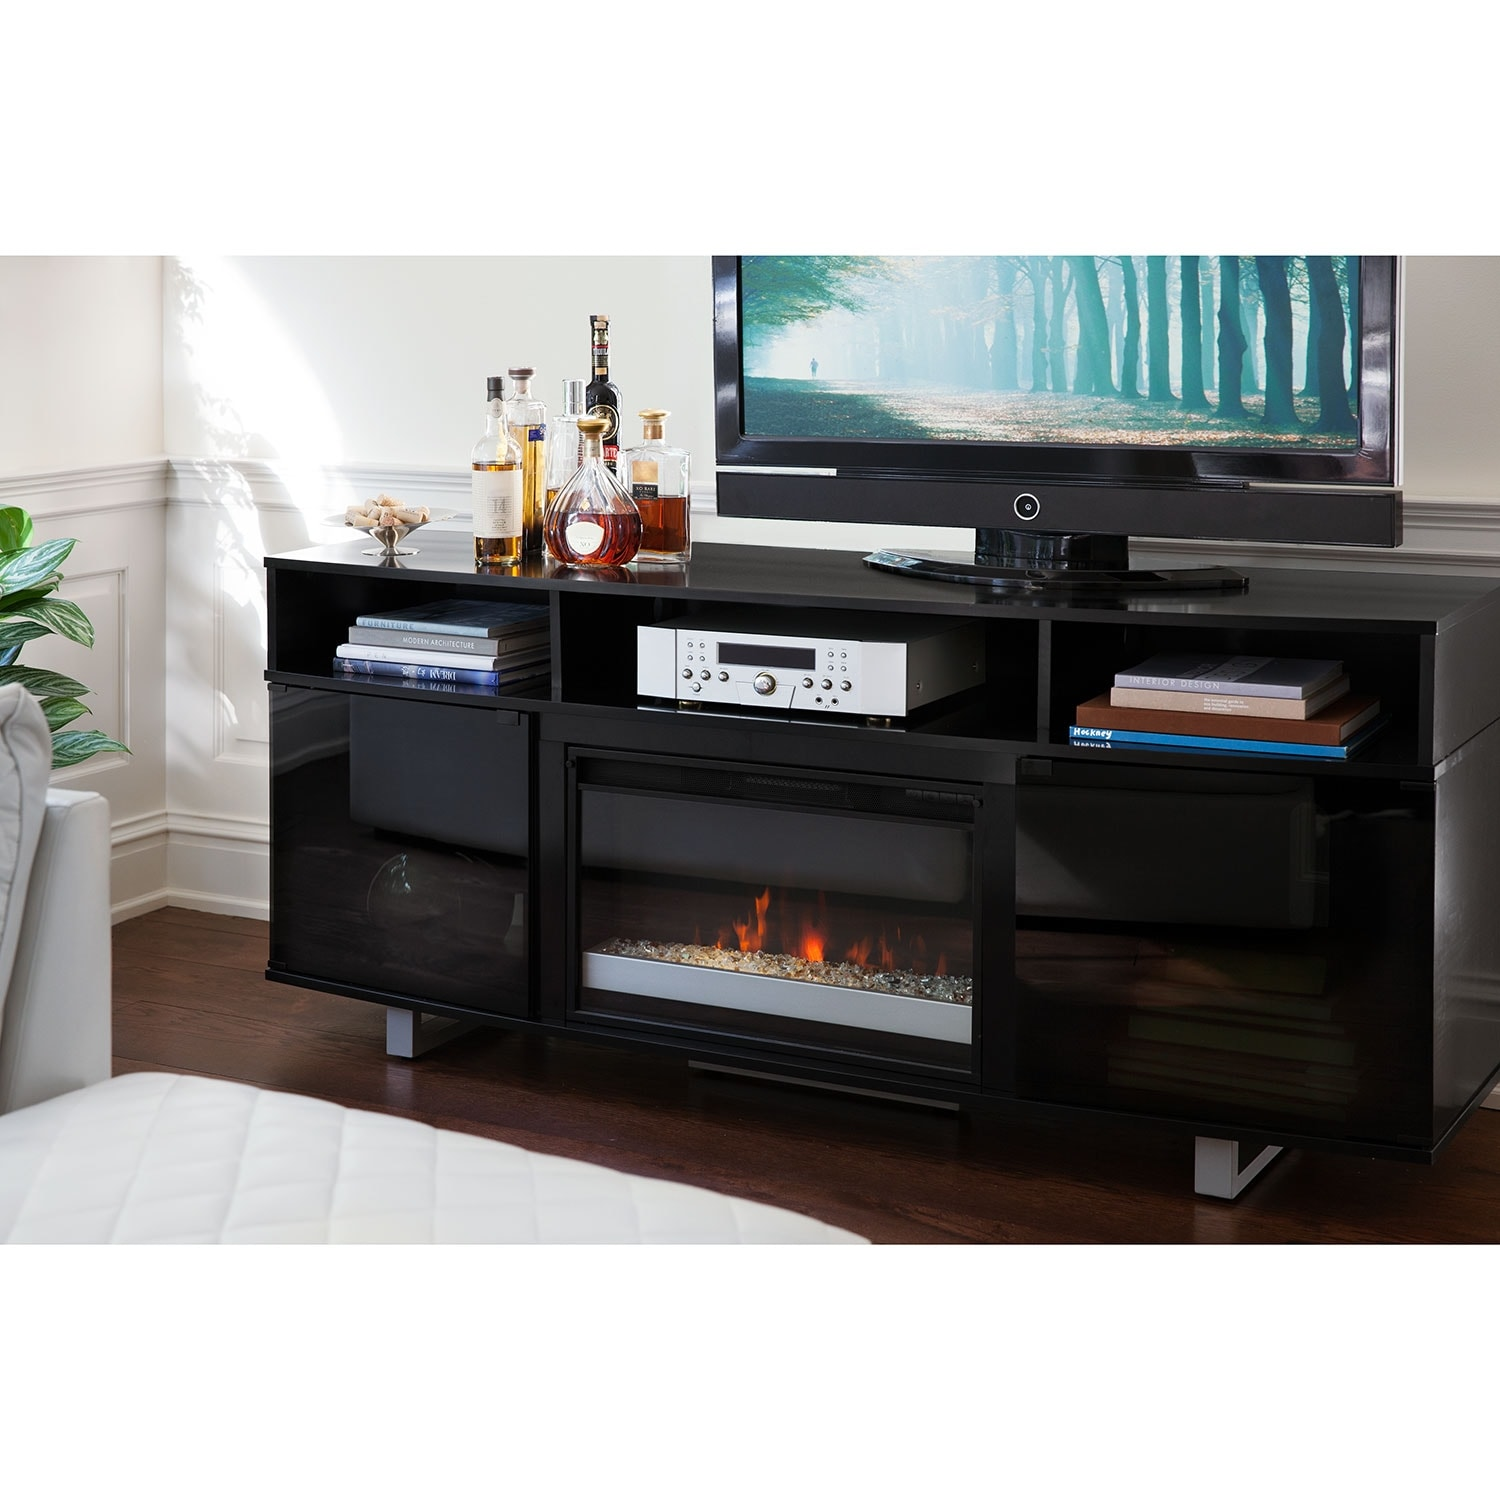 click to change image. pacer  contemporary fireplace tv stand  black  value city